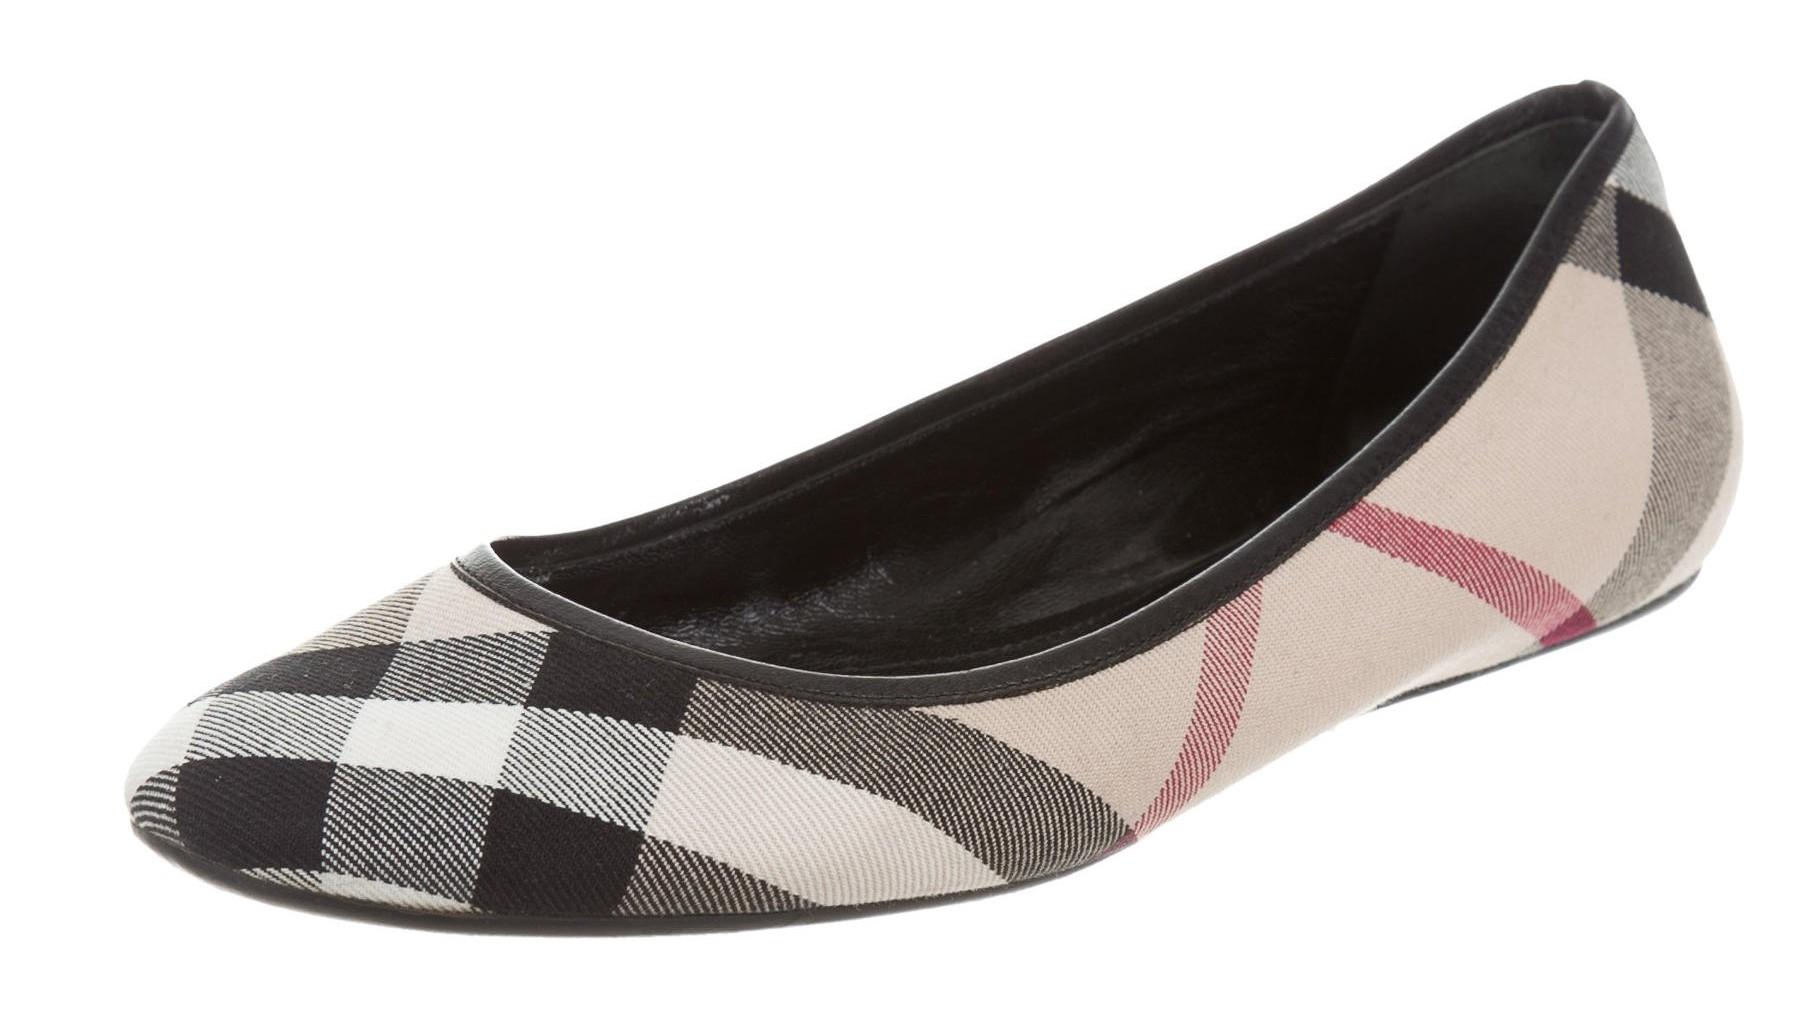 Burberry Canvas Round-Toe Flats sale really discount real collections cheap online WjJSo